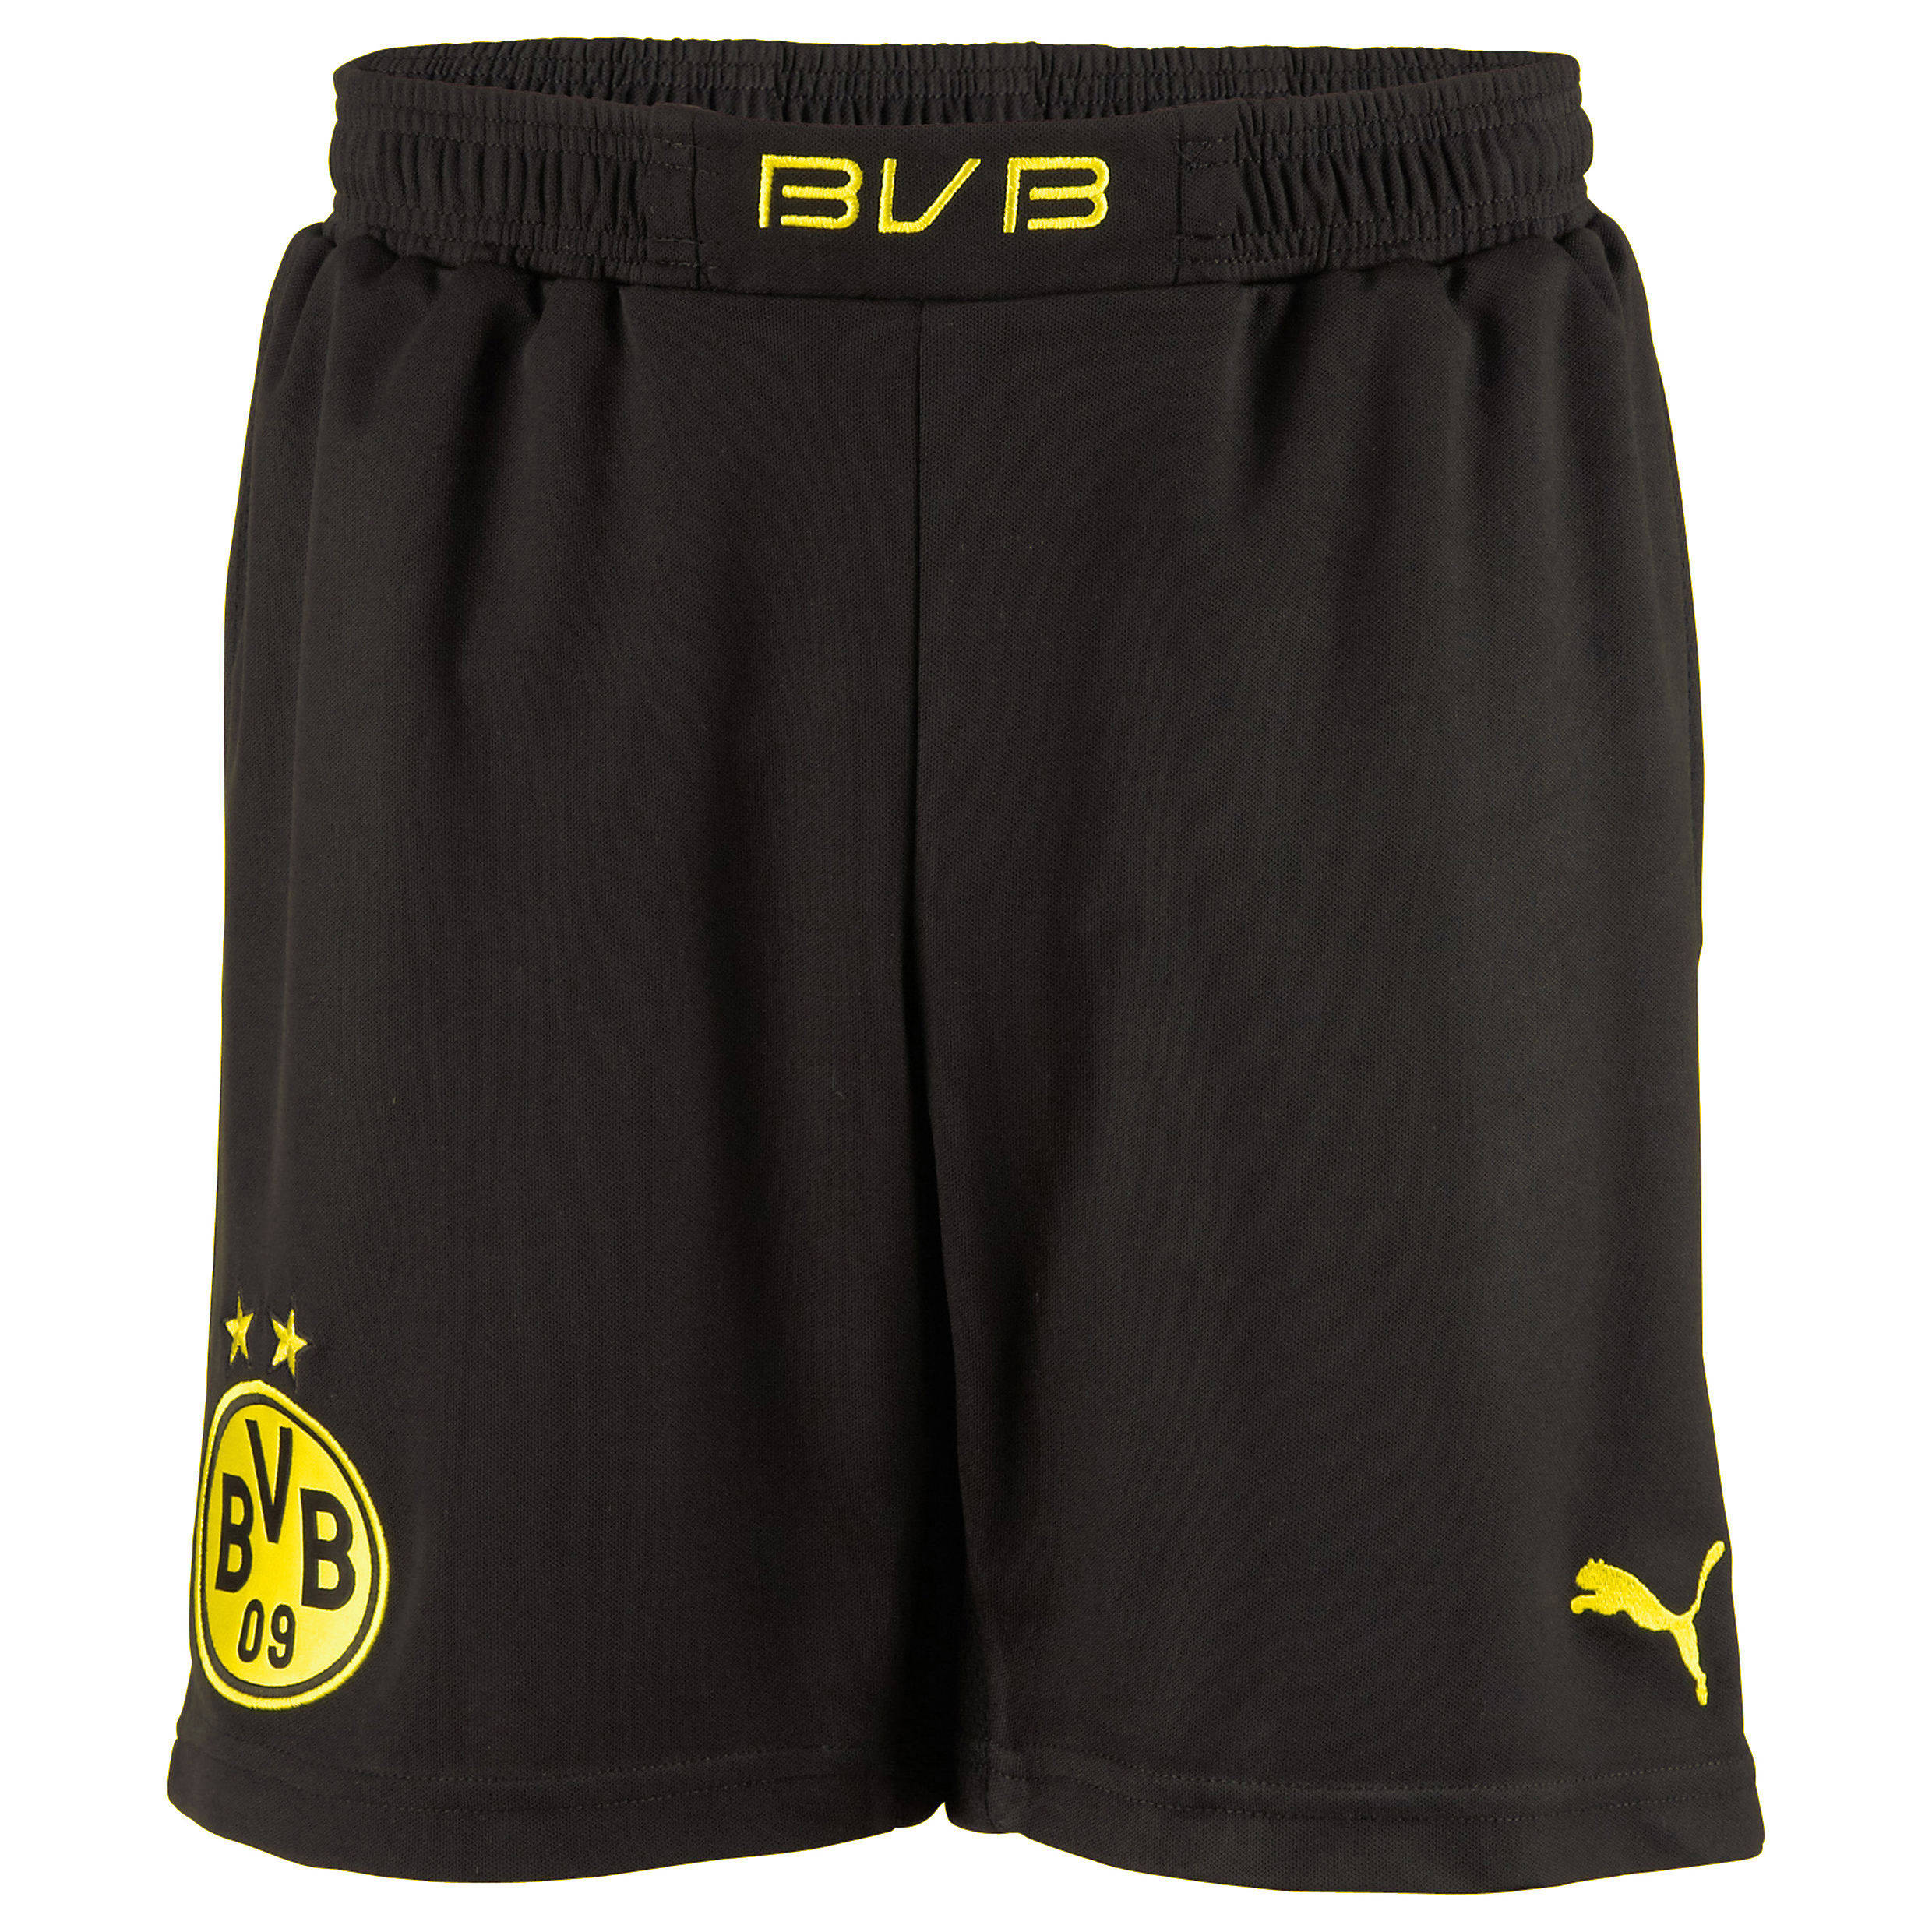 BVB Home Shorts 2013/14 - Kids